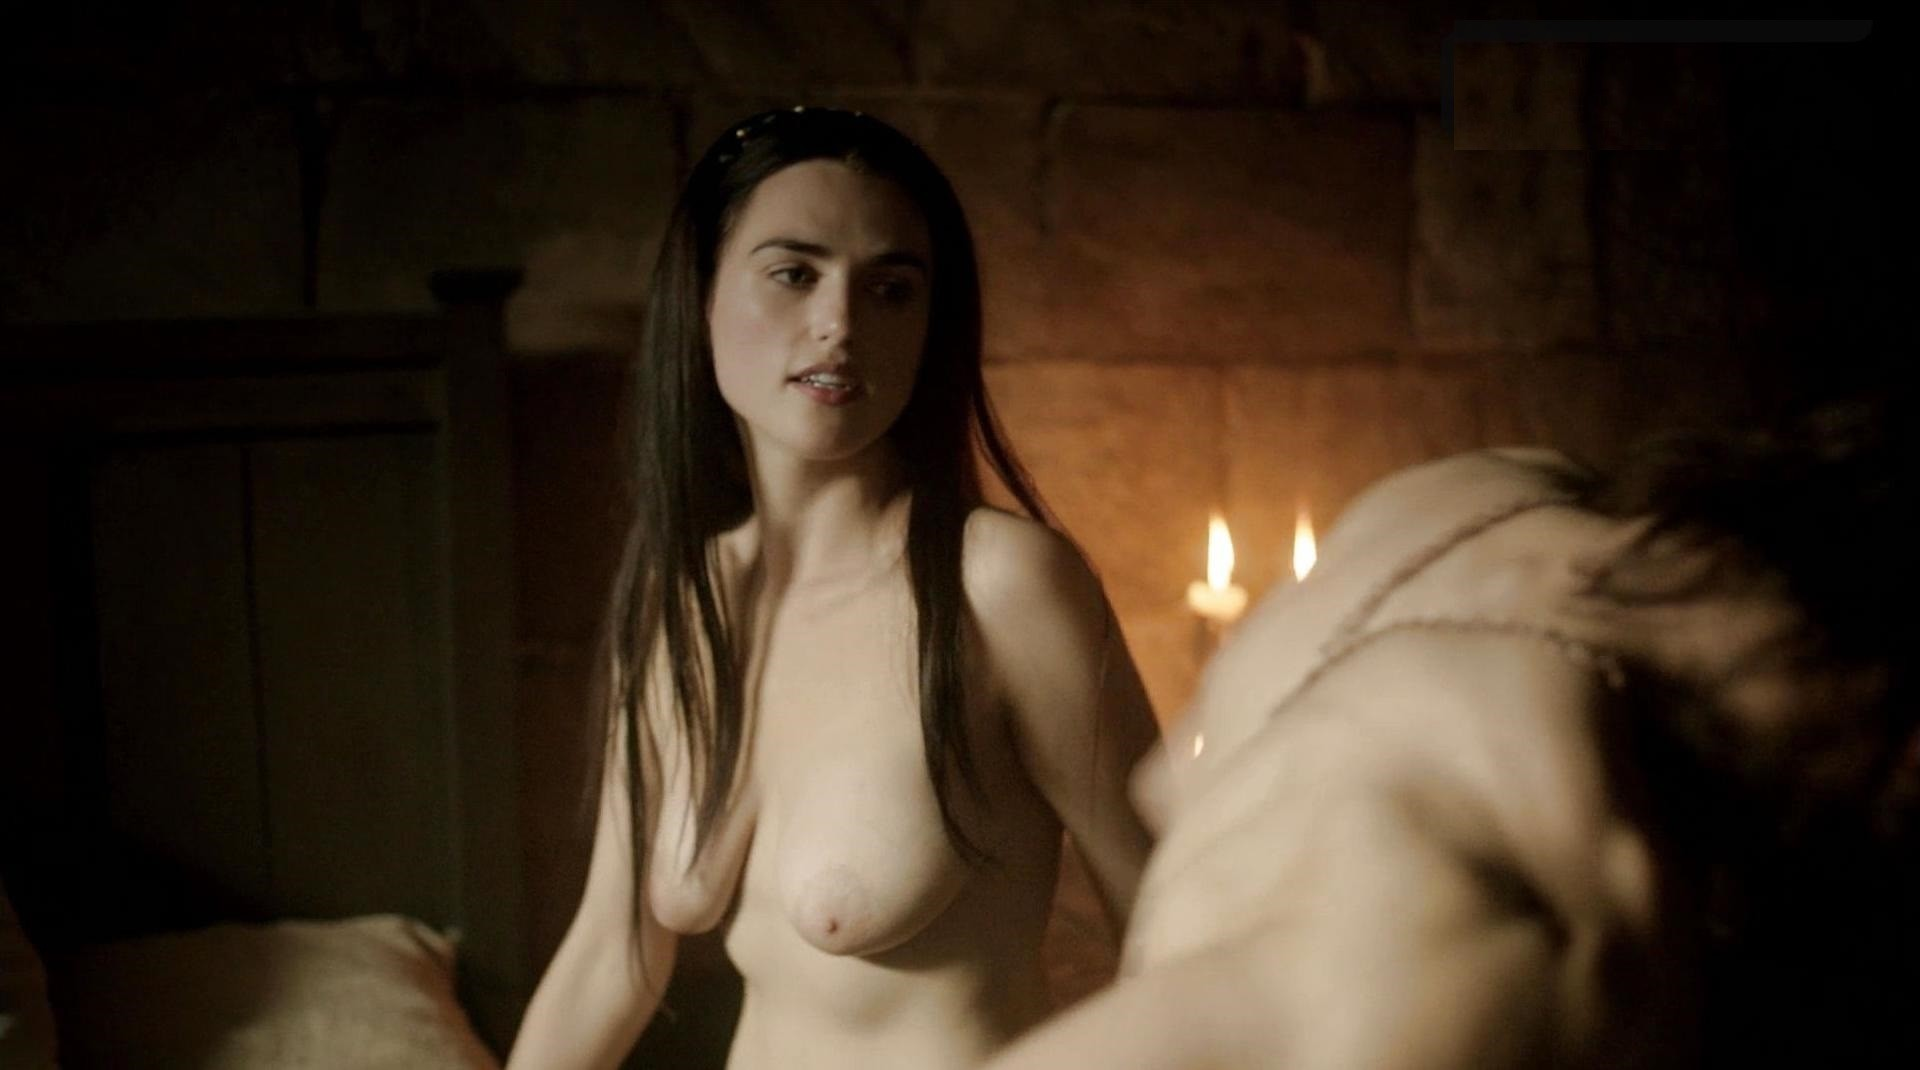 Katie Mcgrath nude in bed